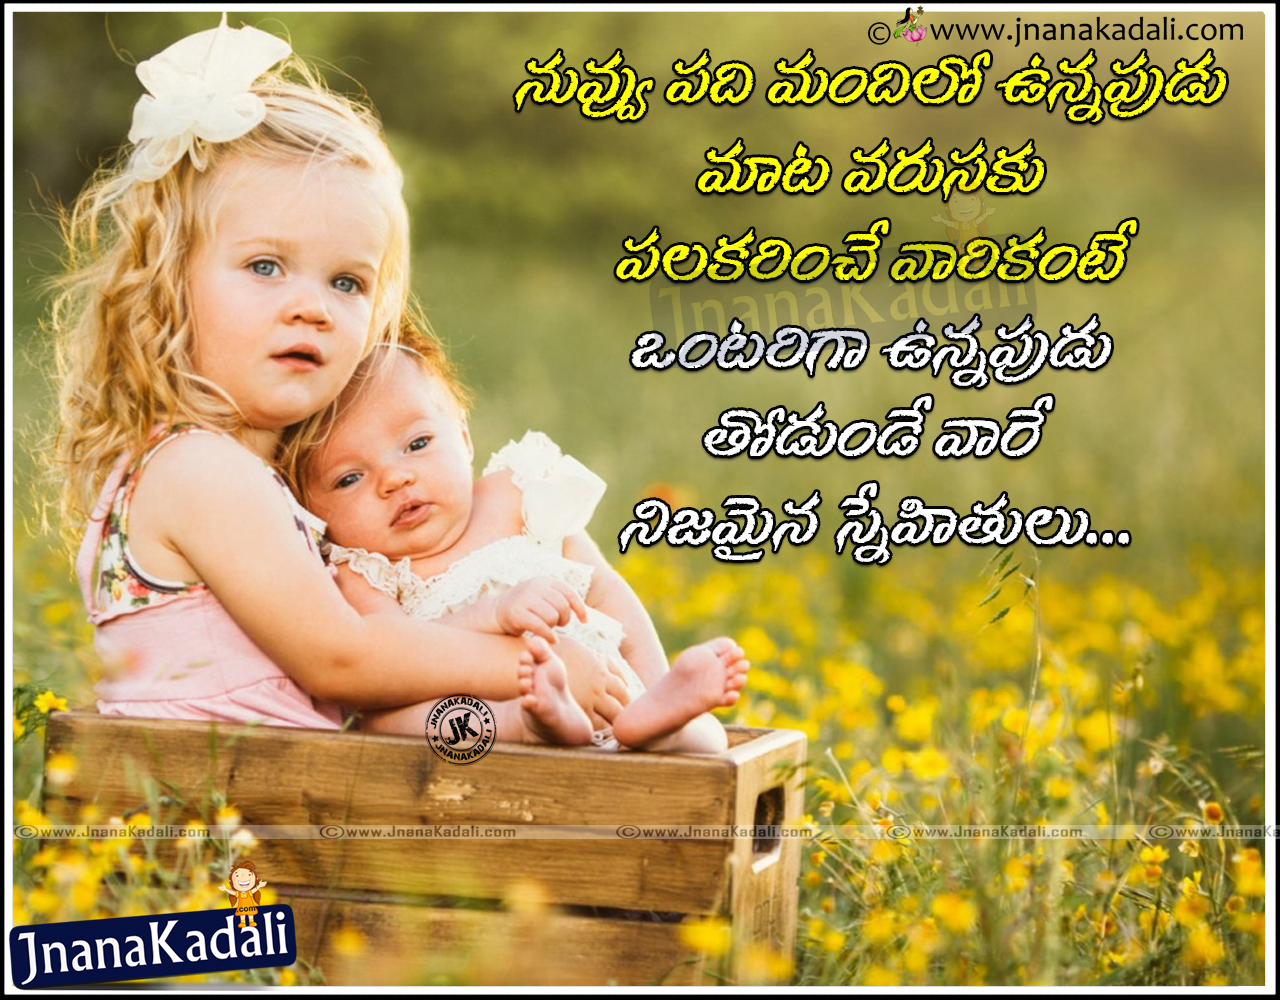 Touching Quotes About Friendship Heart Touching Telugu Friendship Quotes With Hd Wallpapers  Jnana